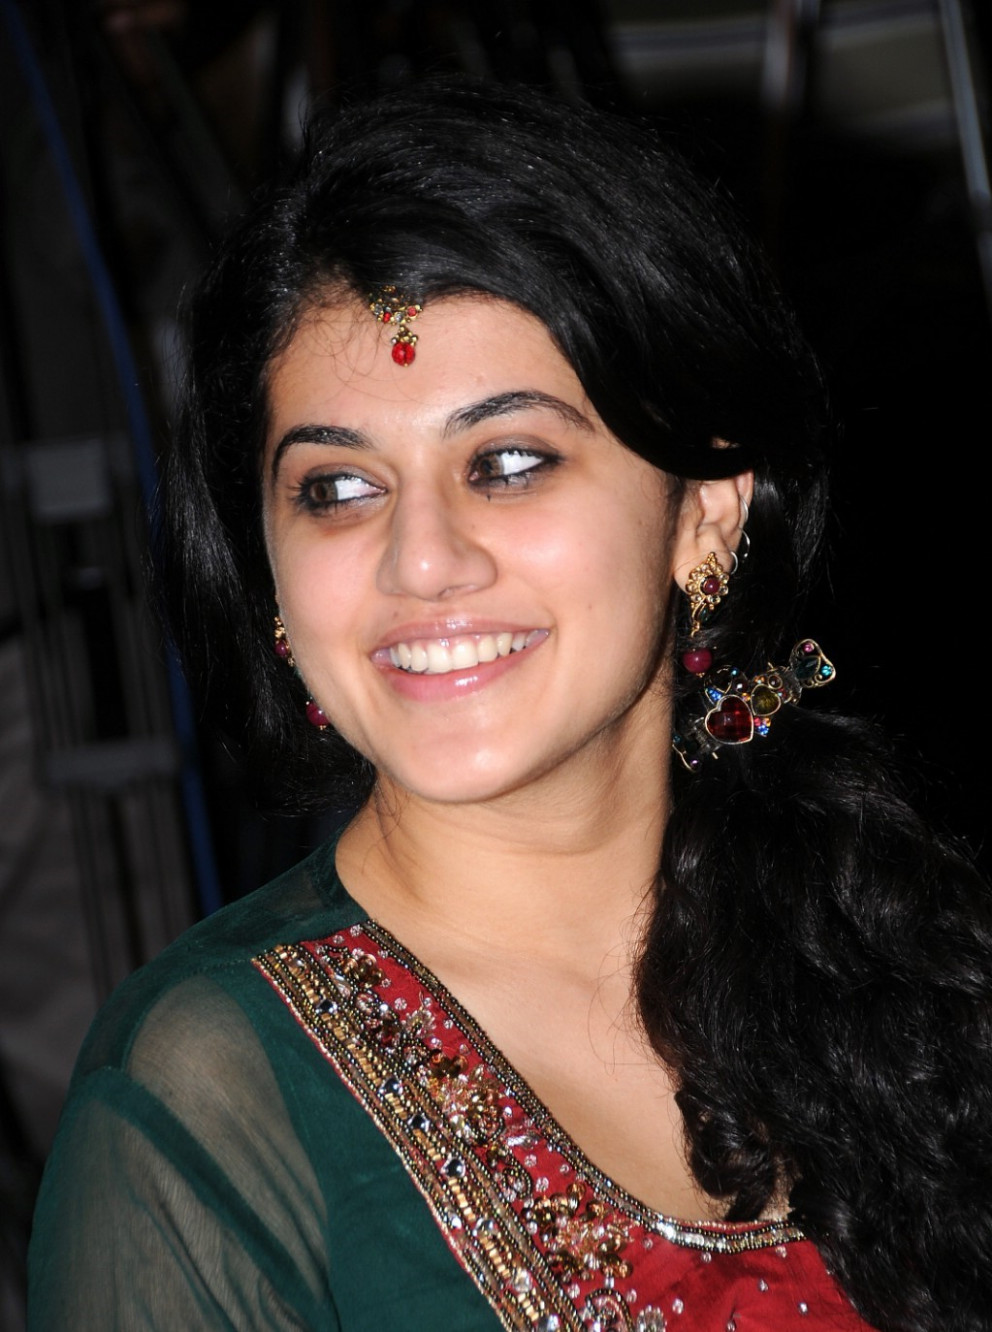 Tapasee-pannu-at-santosham-awards-2009 - Tollywood Actress ...